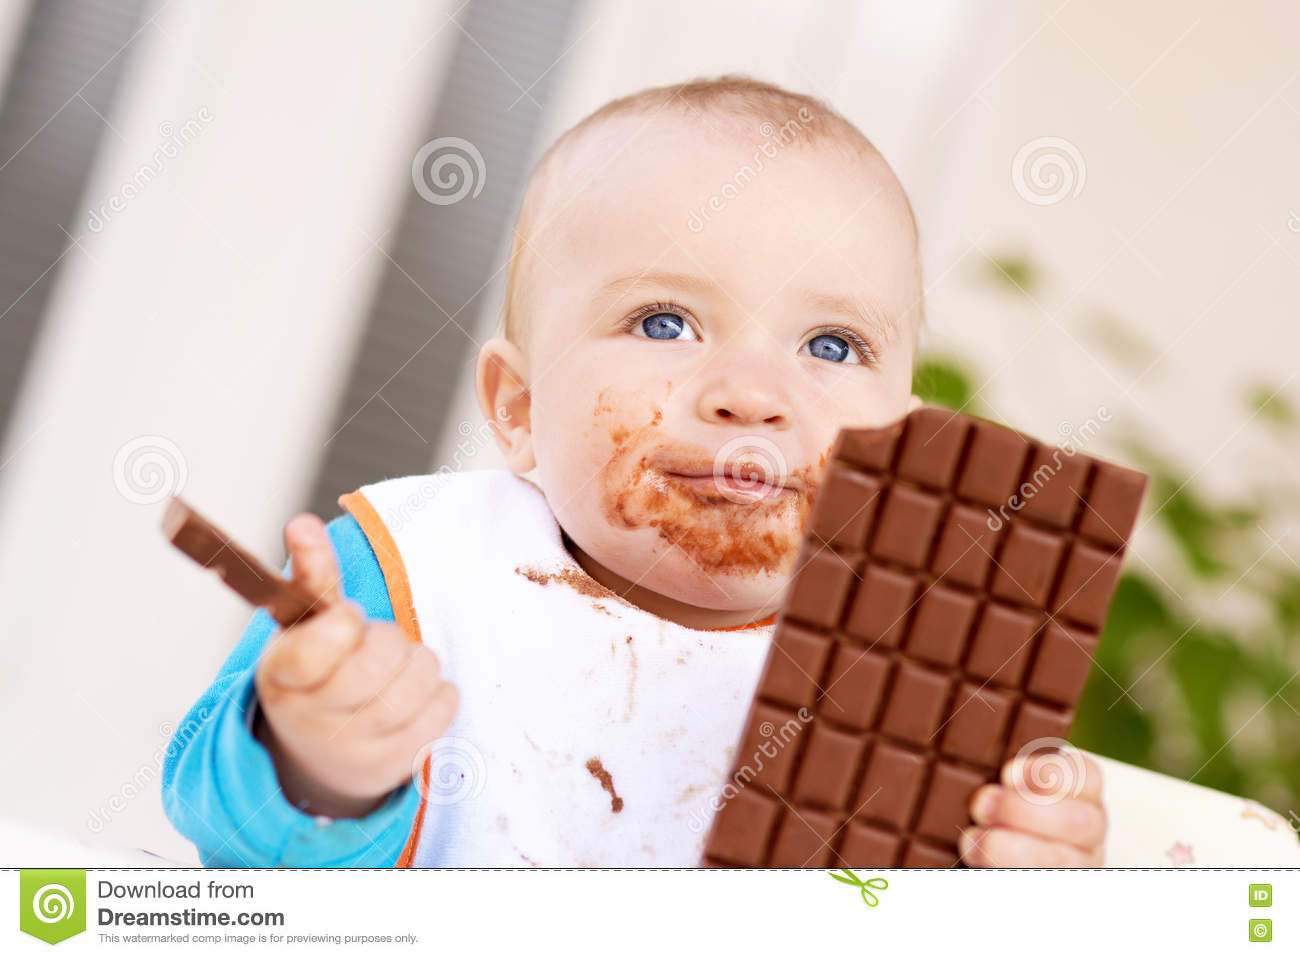 Baby Boy Eating Chocolate Stock Photo - Image: 76892648